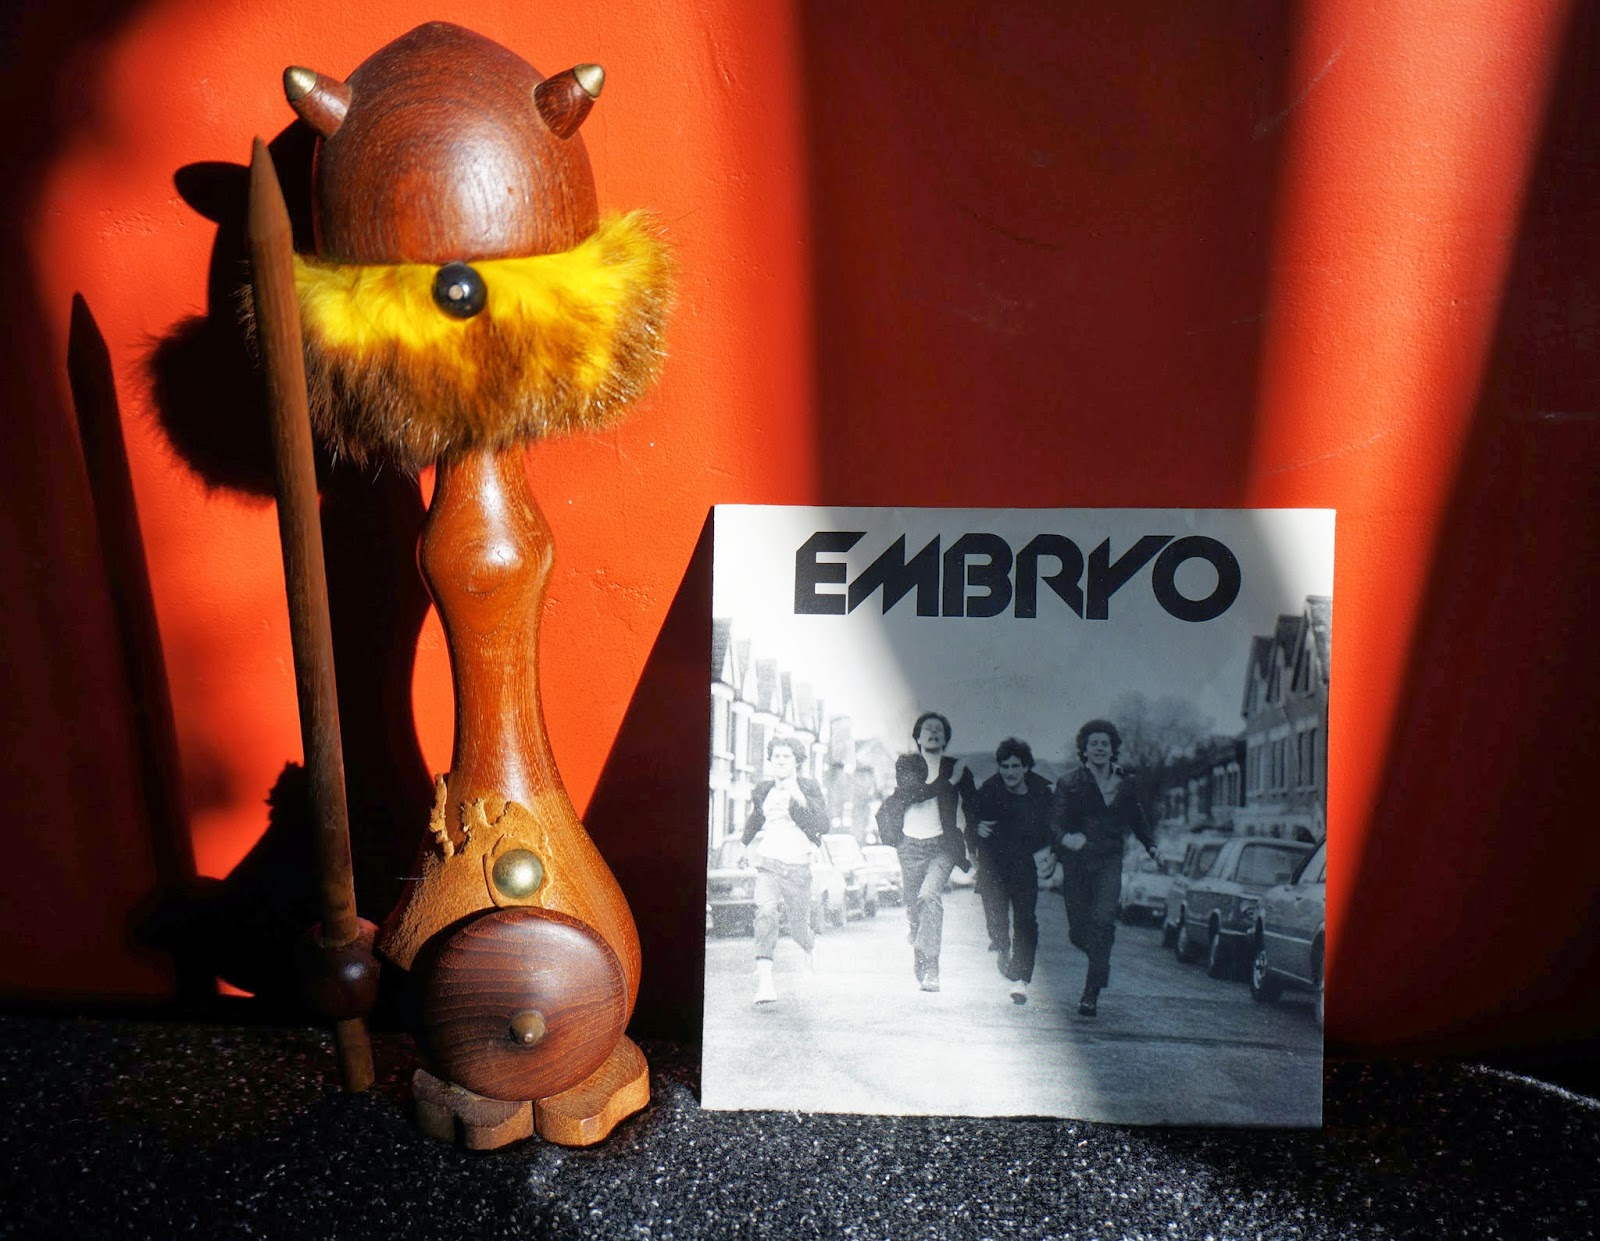 Embryo - You know he did - I'm different - 1980 Rampant records  punk rock kbd